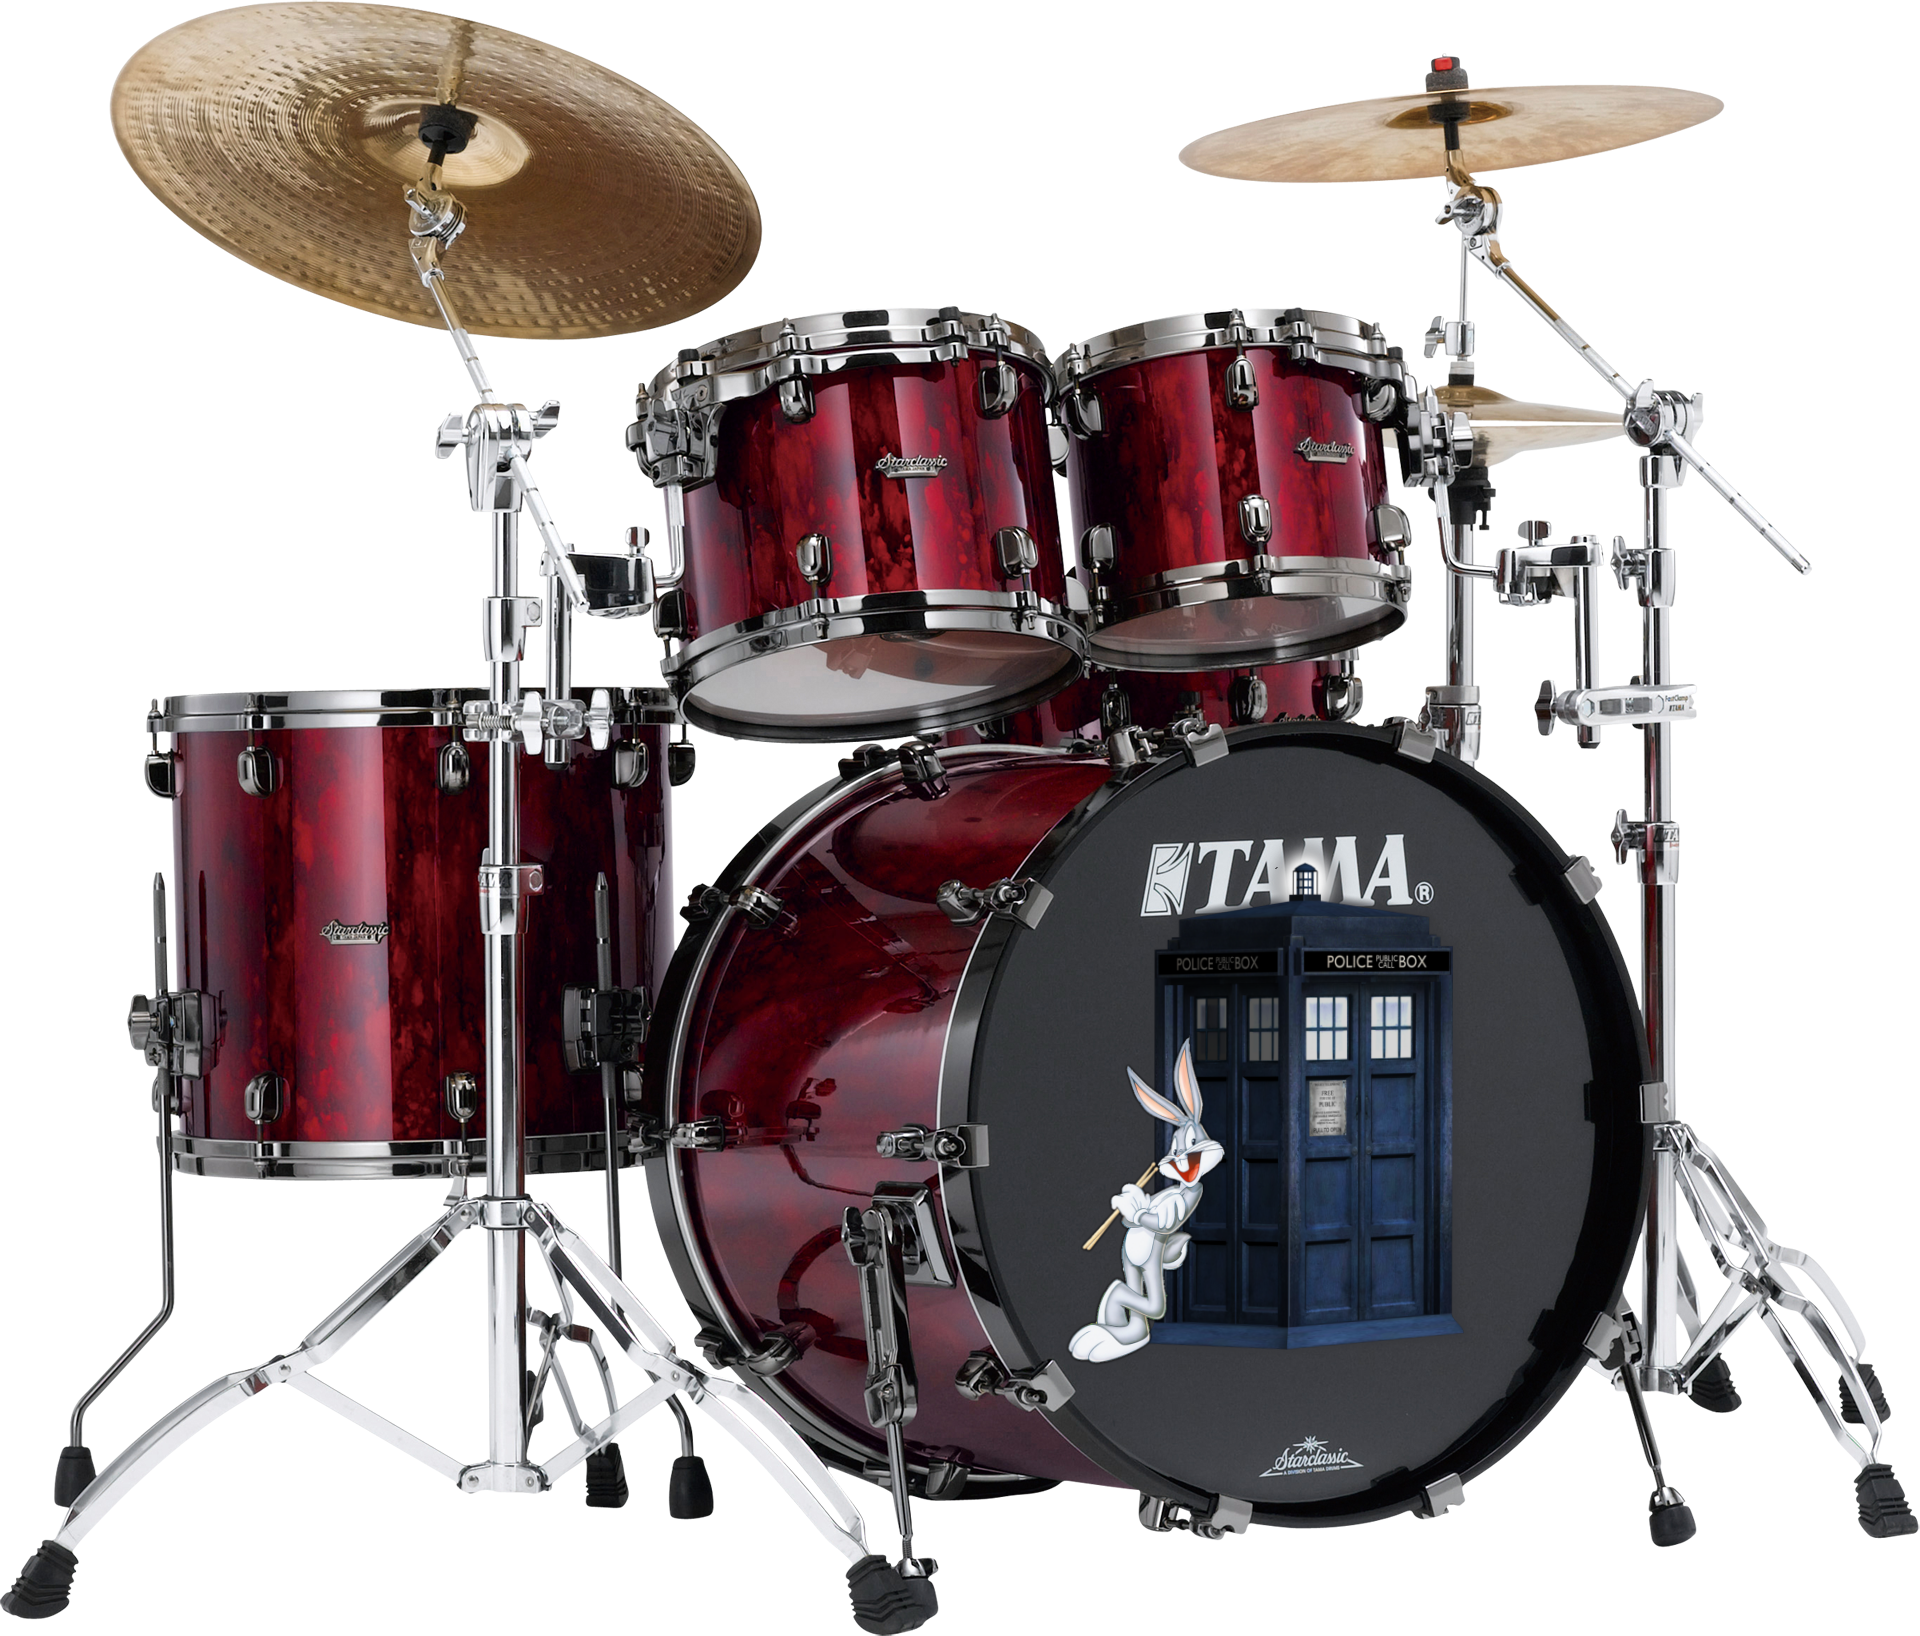 drum set png black and white transparent drum set black and white images pluspng #30139